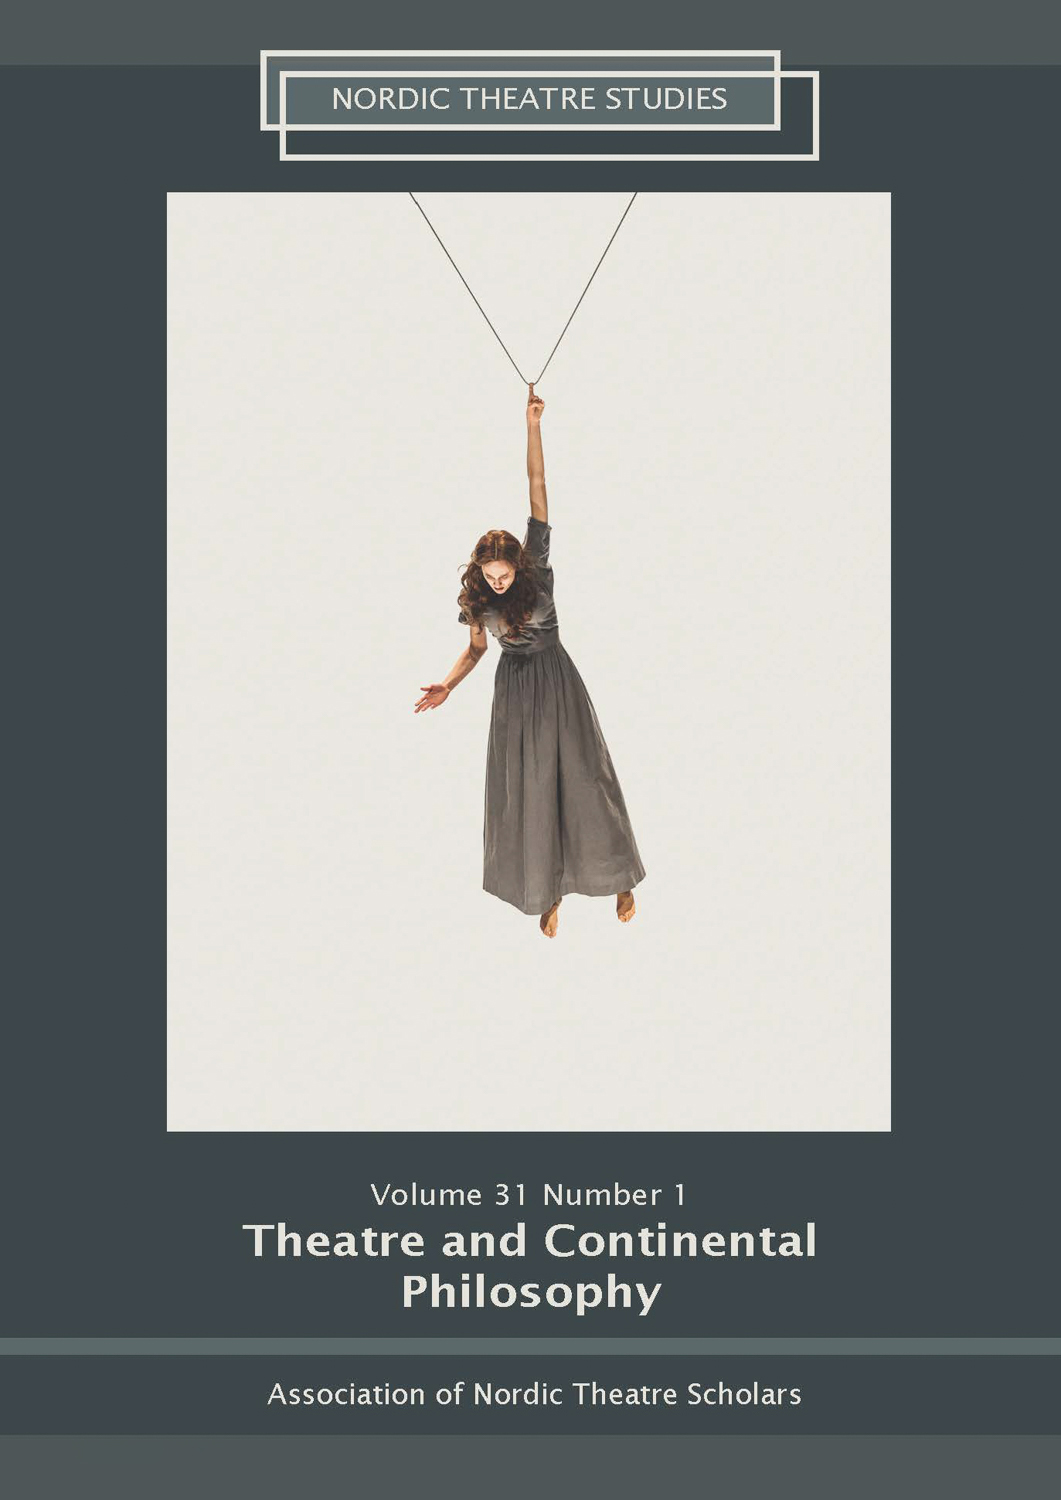 Nordic Theatre Studies | Theatre and Continental Philosophy